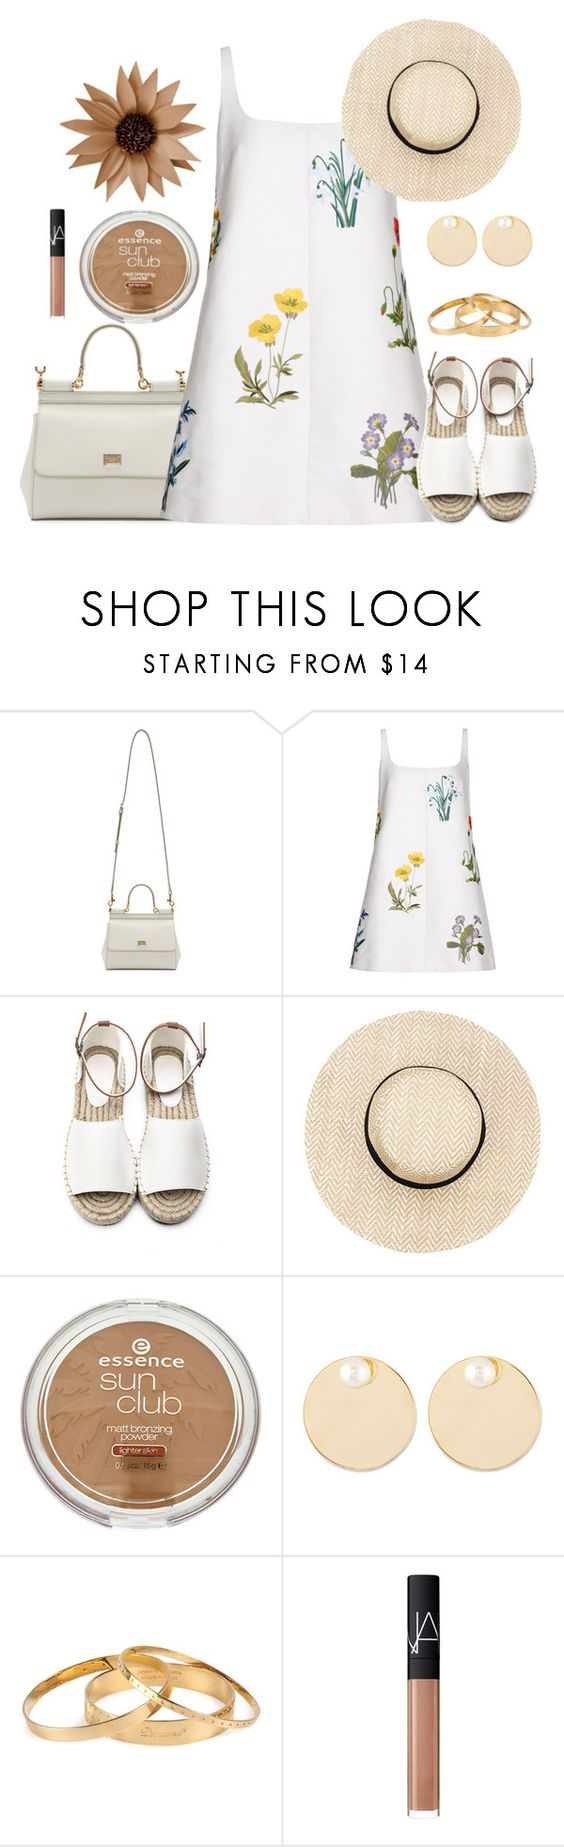 """:)"" by liora134 ❤ liked on Polyvore featuring Dolce&Gabbana, STELLA McCARTNEY, Auden, Dsquared2 and NARS Cosmetics"